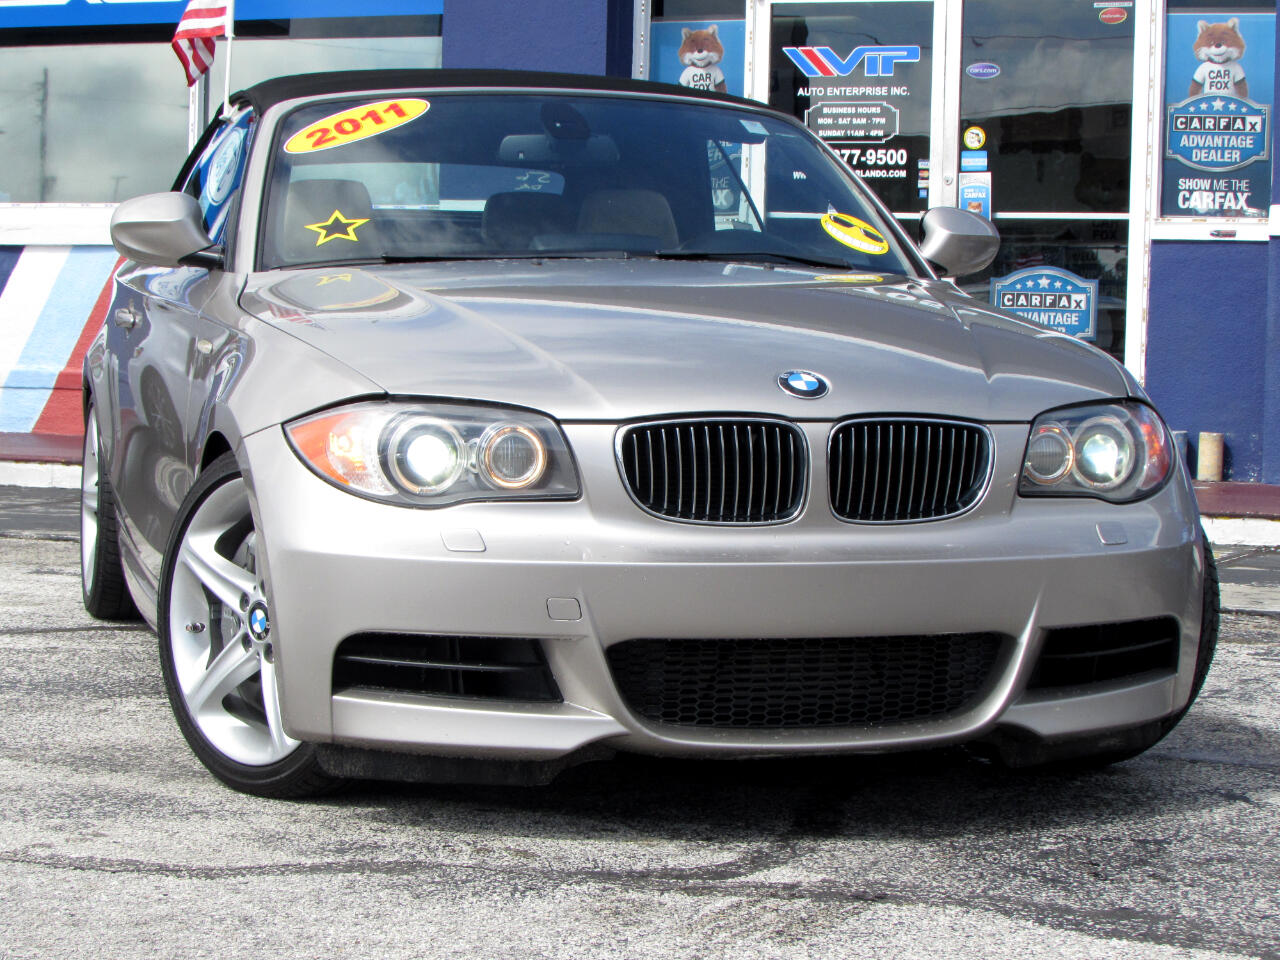 BMW 1 Series 2dr Conv 135i 2011